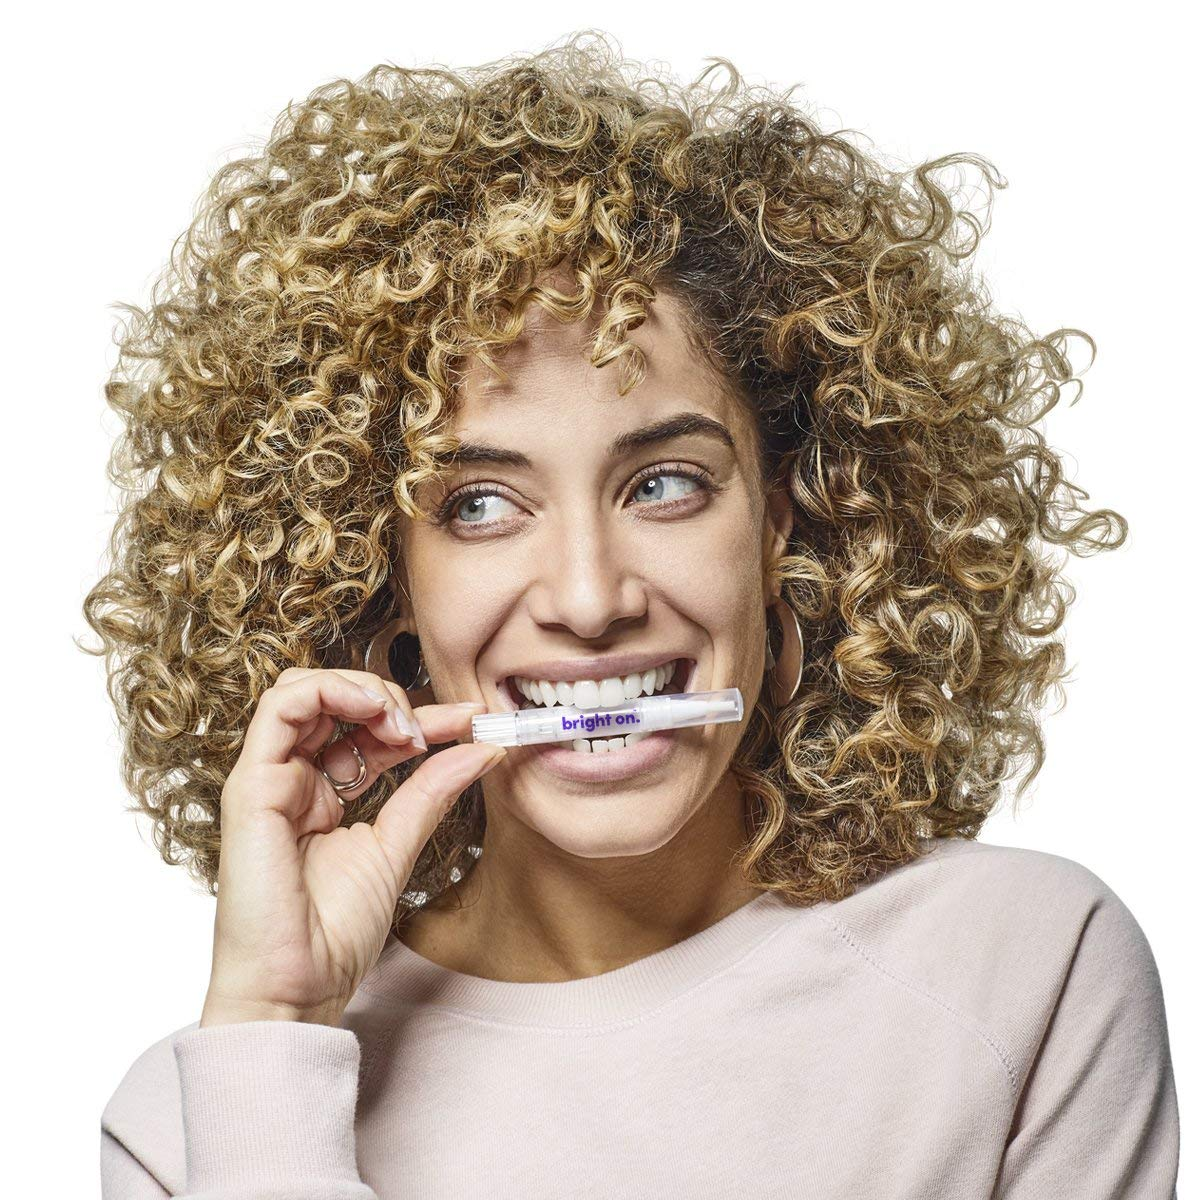 Smile Direct Club Teeth Whitening Kit with 9 Premium Hydrogen Peroxide Pens and 20-LED Accelerator Light, Brighten 3x Faster Than Strips - 12 Month Supply, USB, USB-C, microUSB & Lightning Adapter by SmileDirectClub (Image #7)